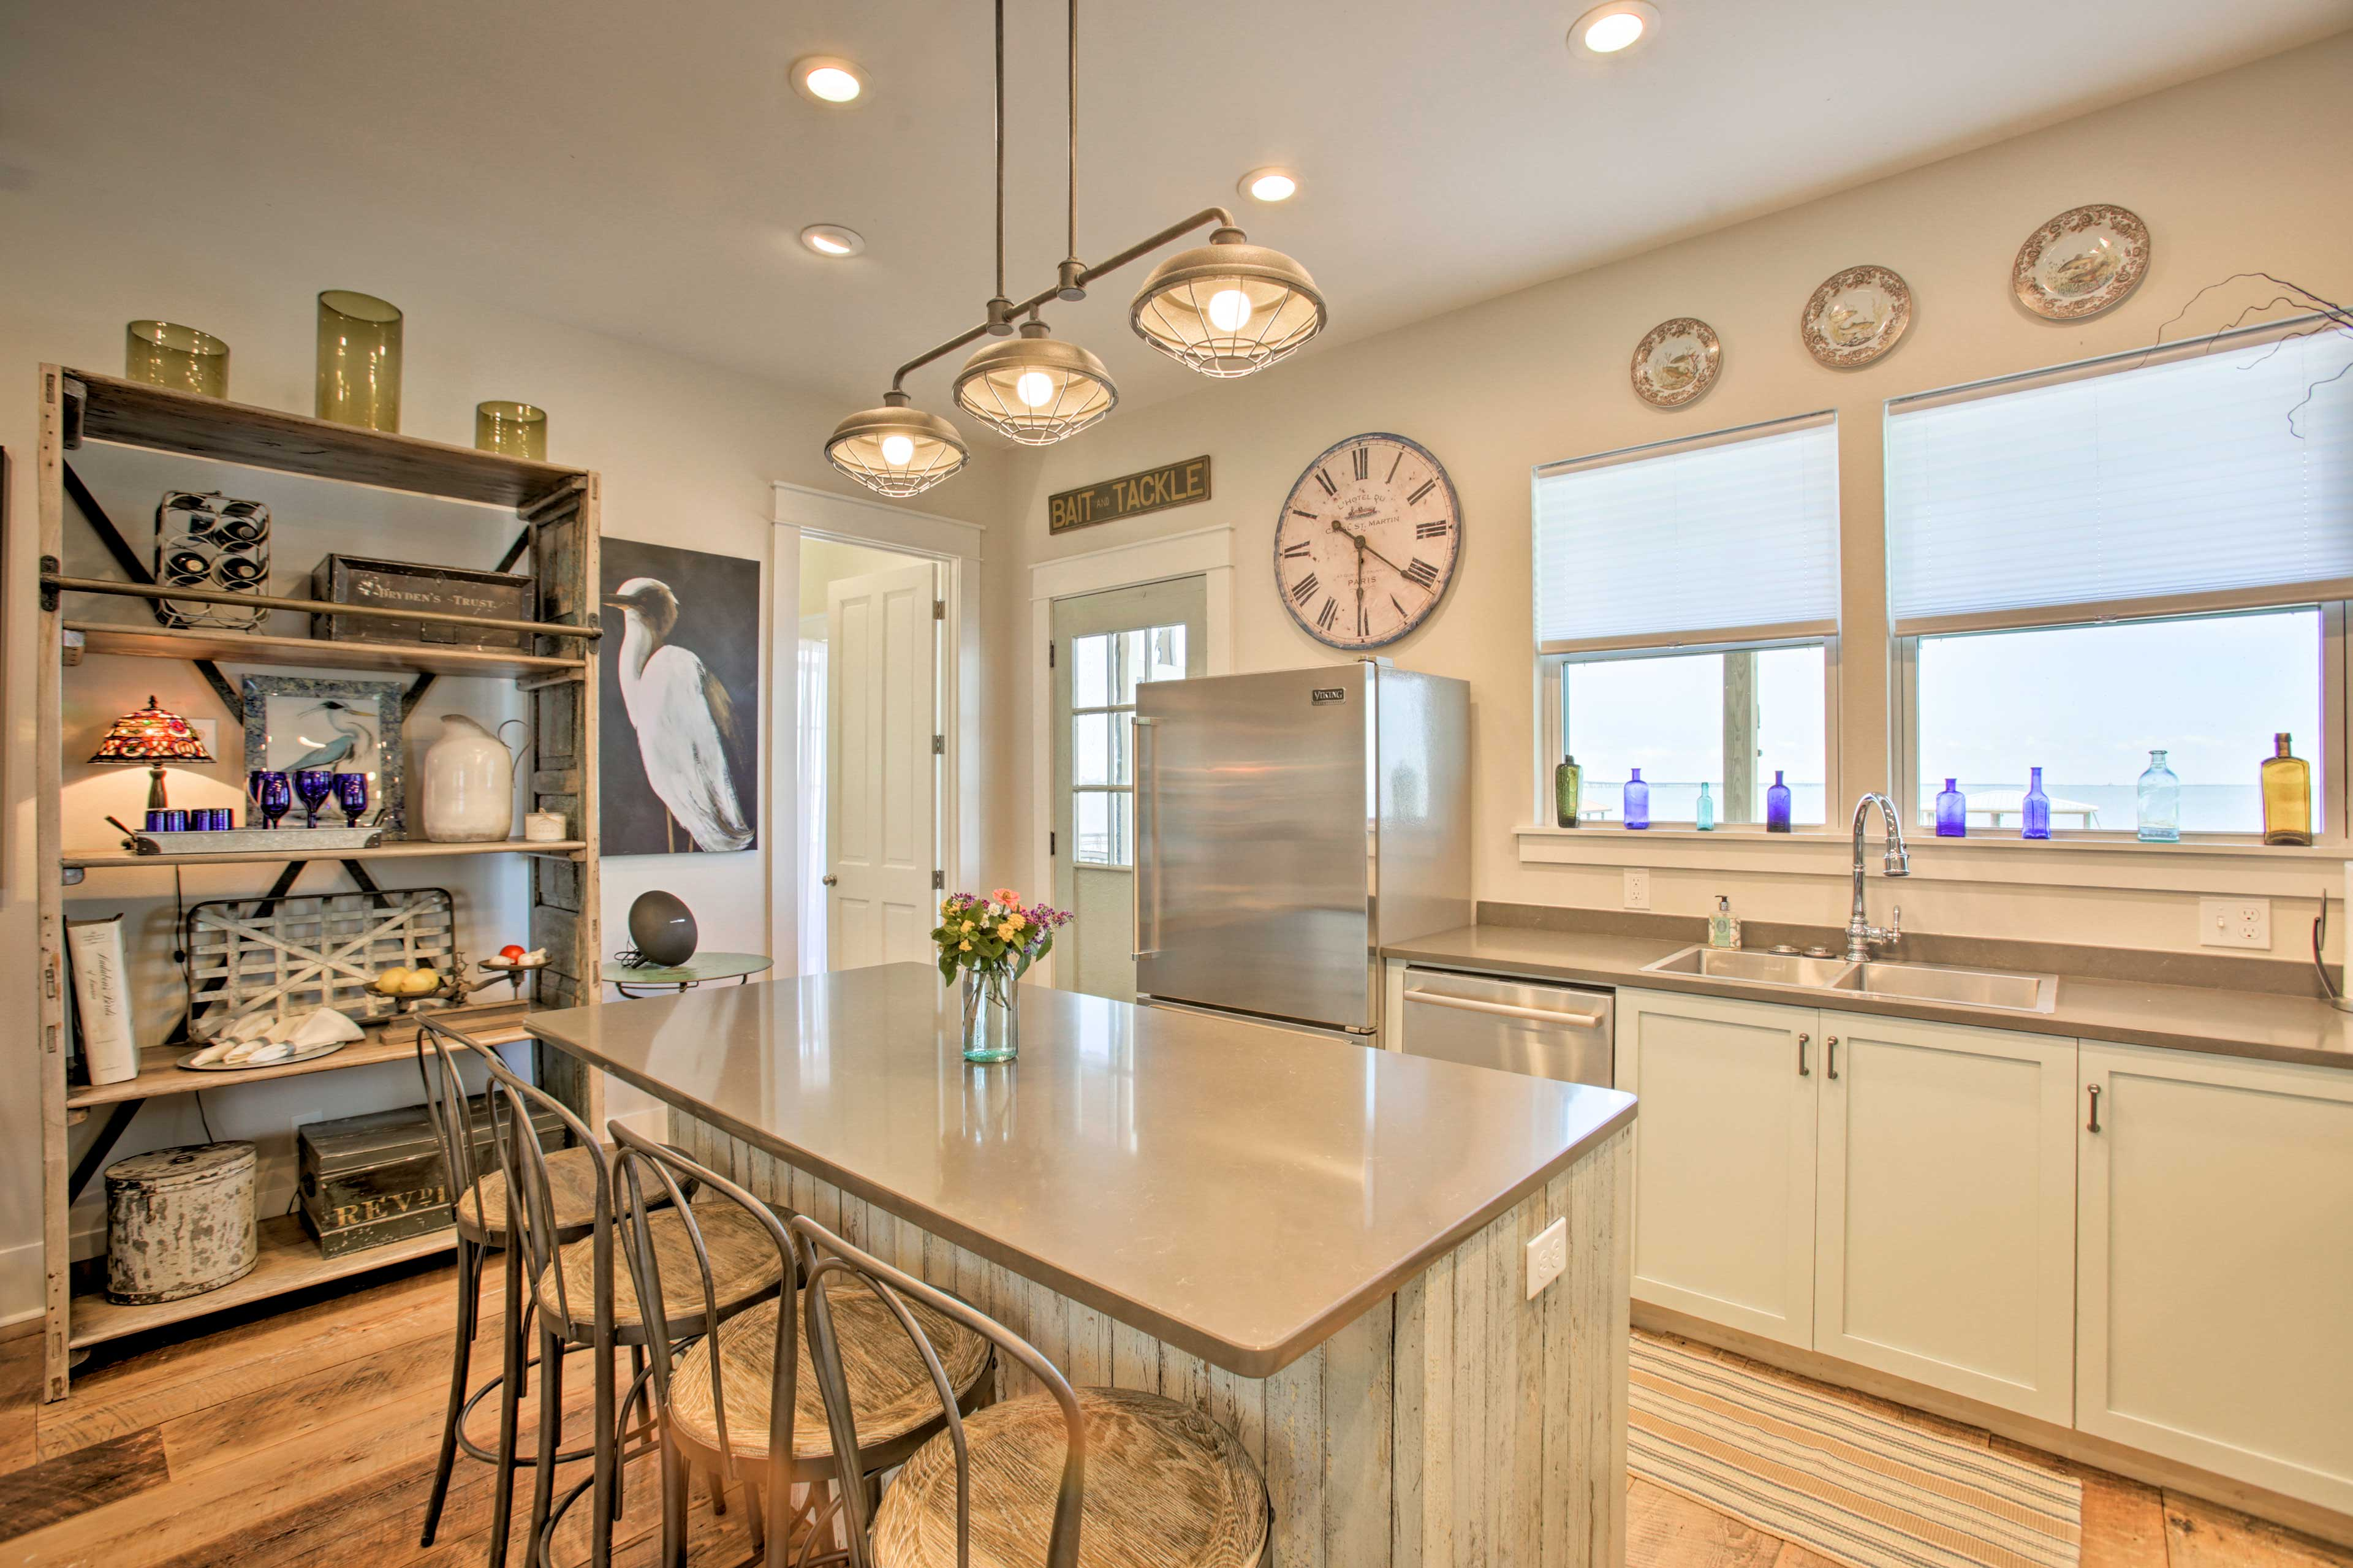 The open layout boasts hardwood floors accented by chic decor.